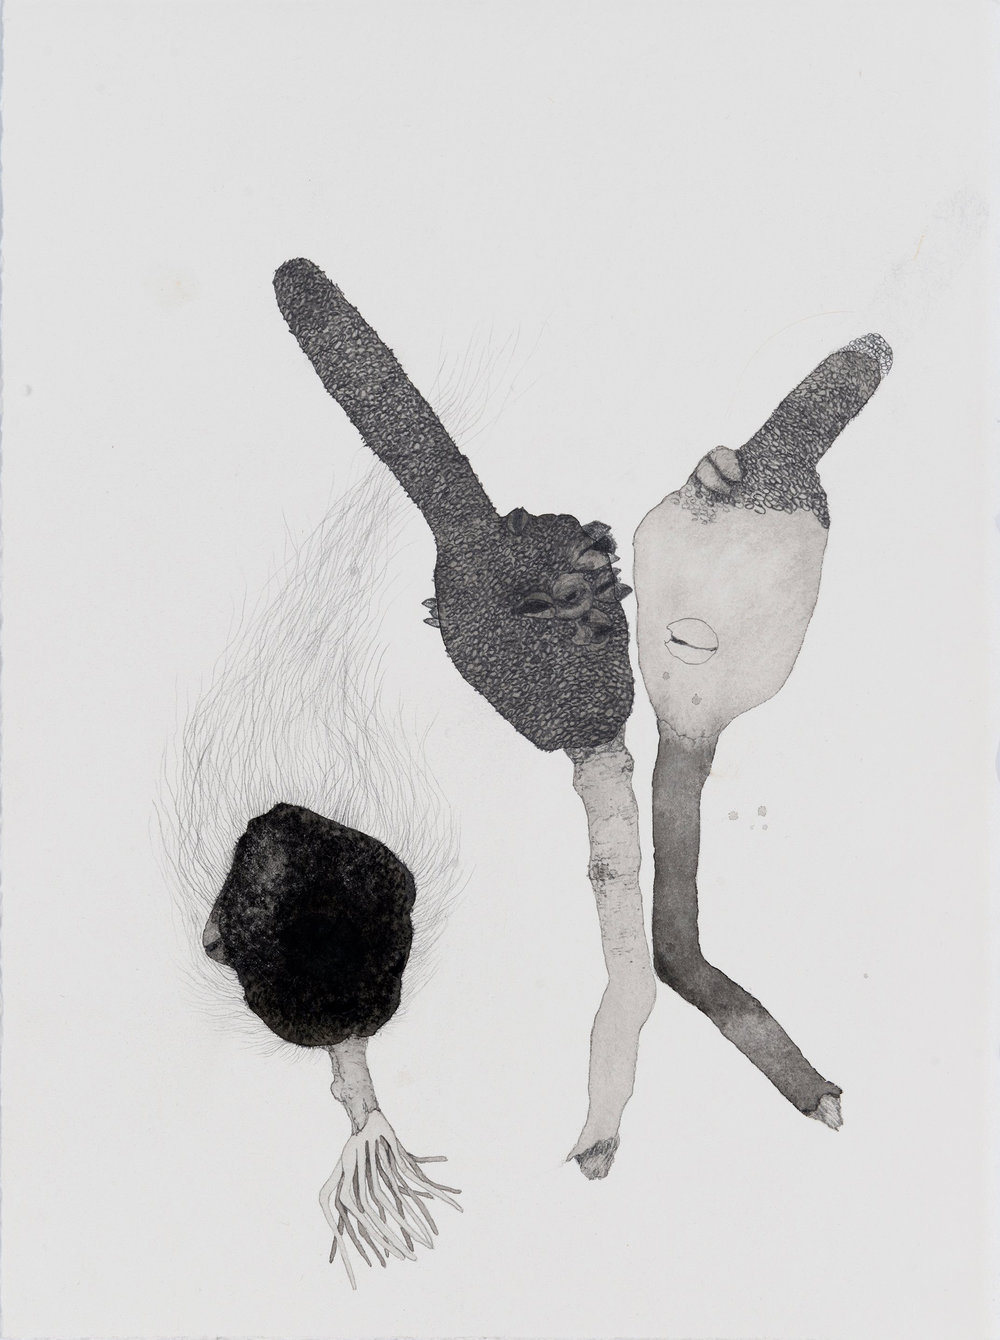 Sway, 2017, ink, graphite and conte on paper, 28.5 x 38cm. Photographer:Eva Fernandez